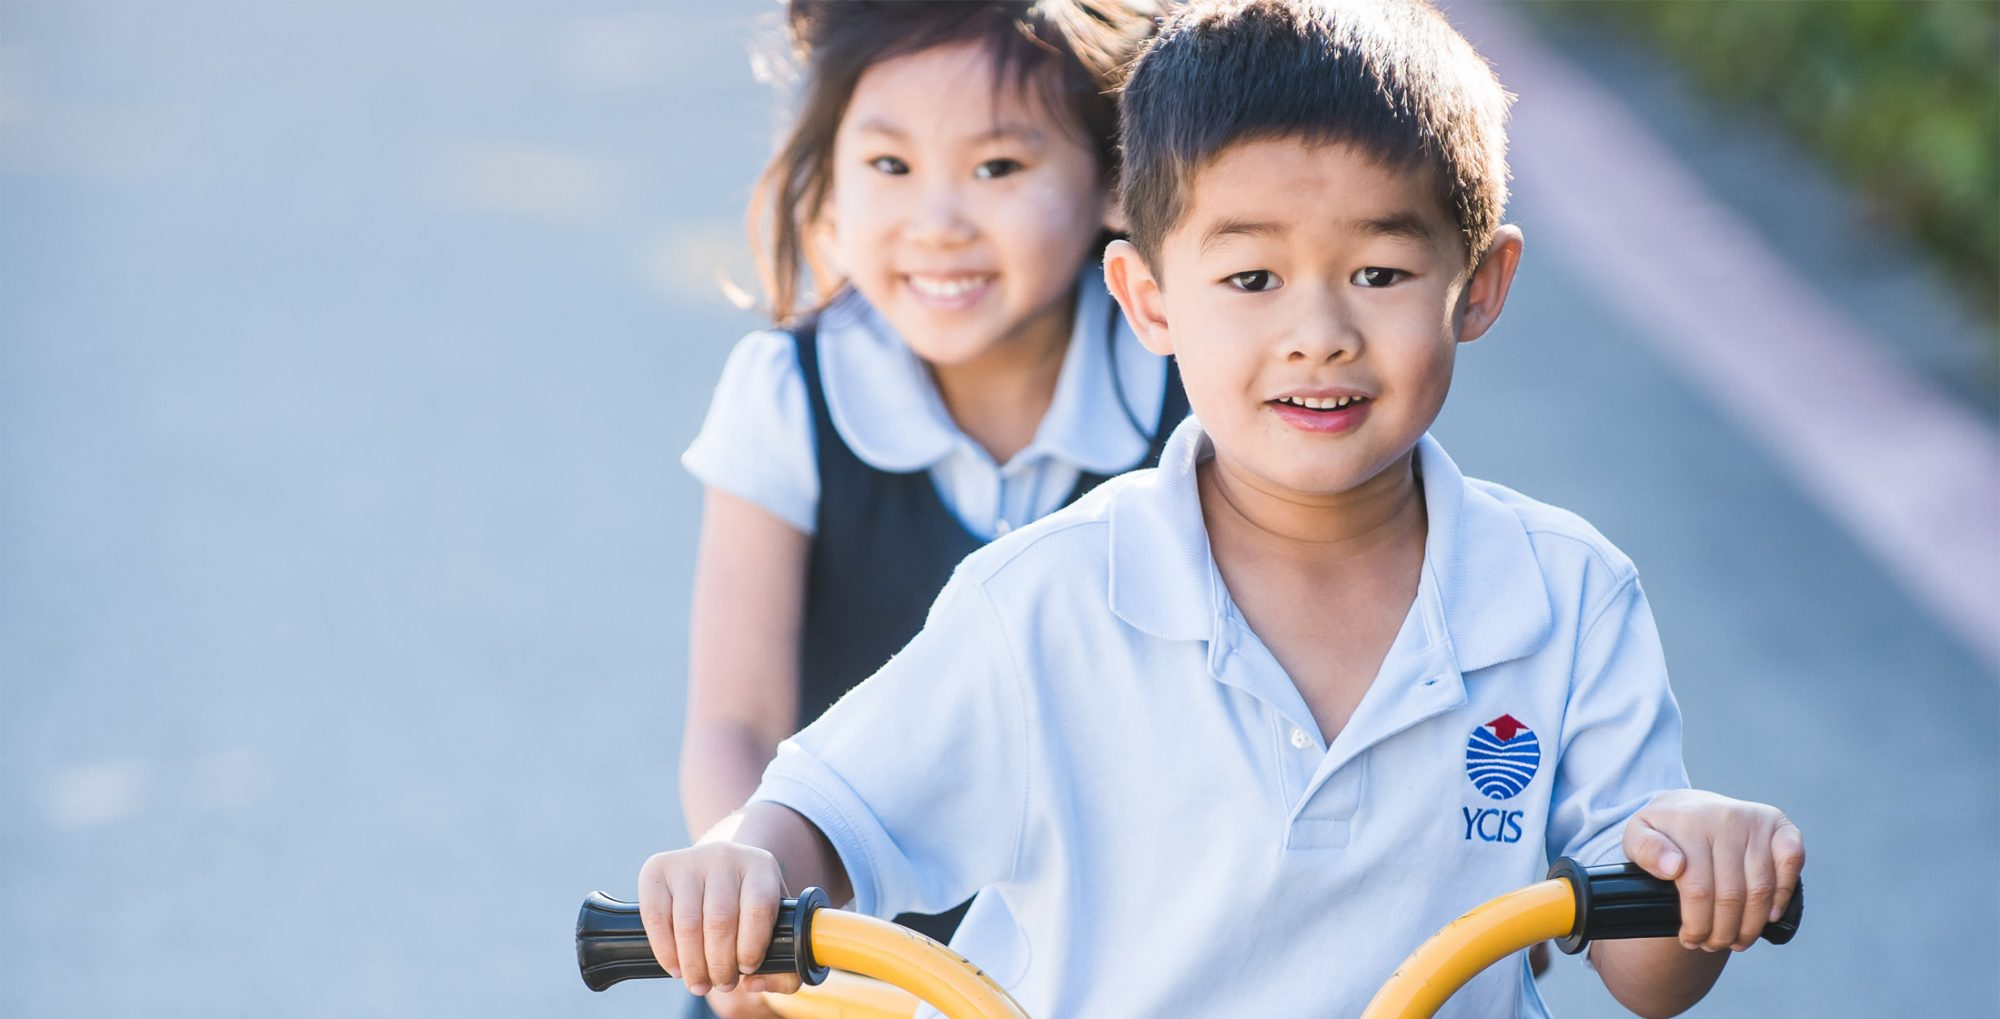 boy and a girl riding a bicycle